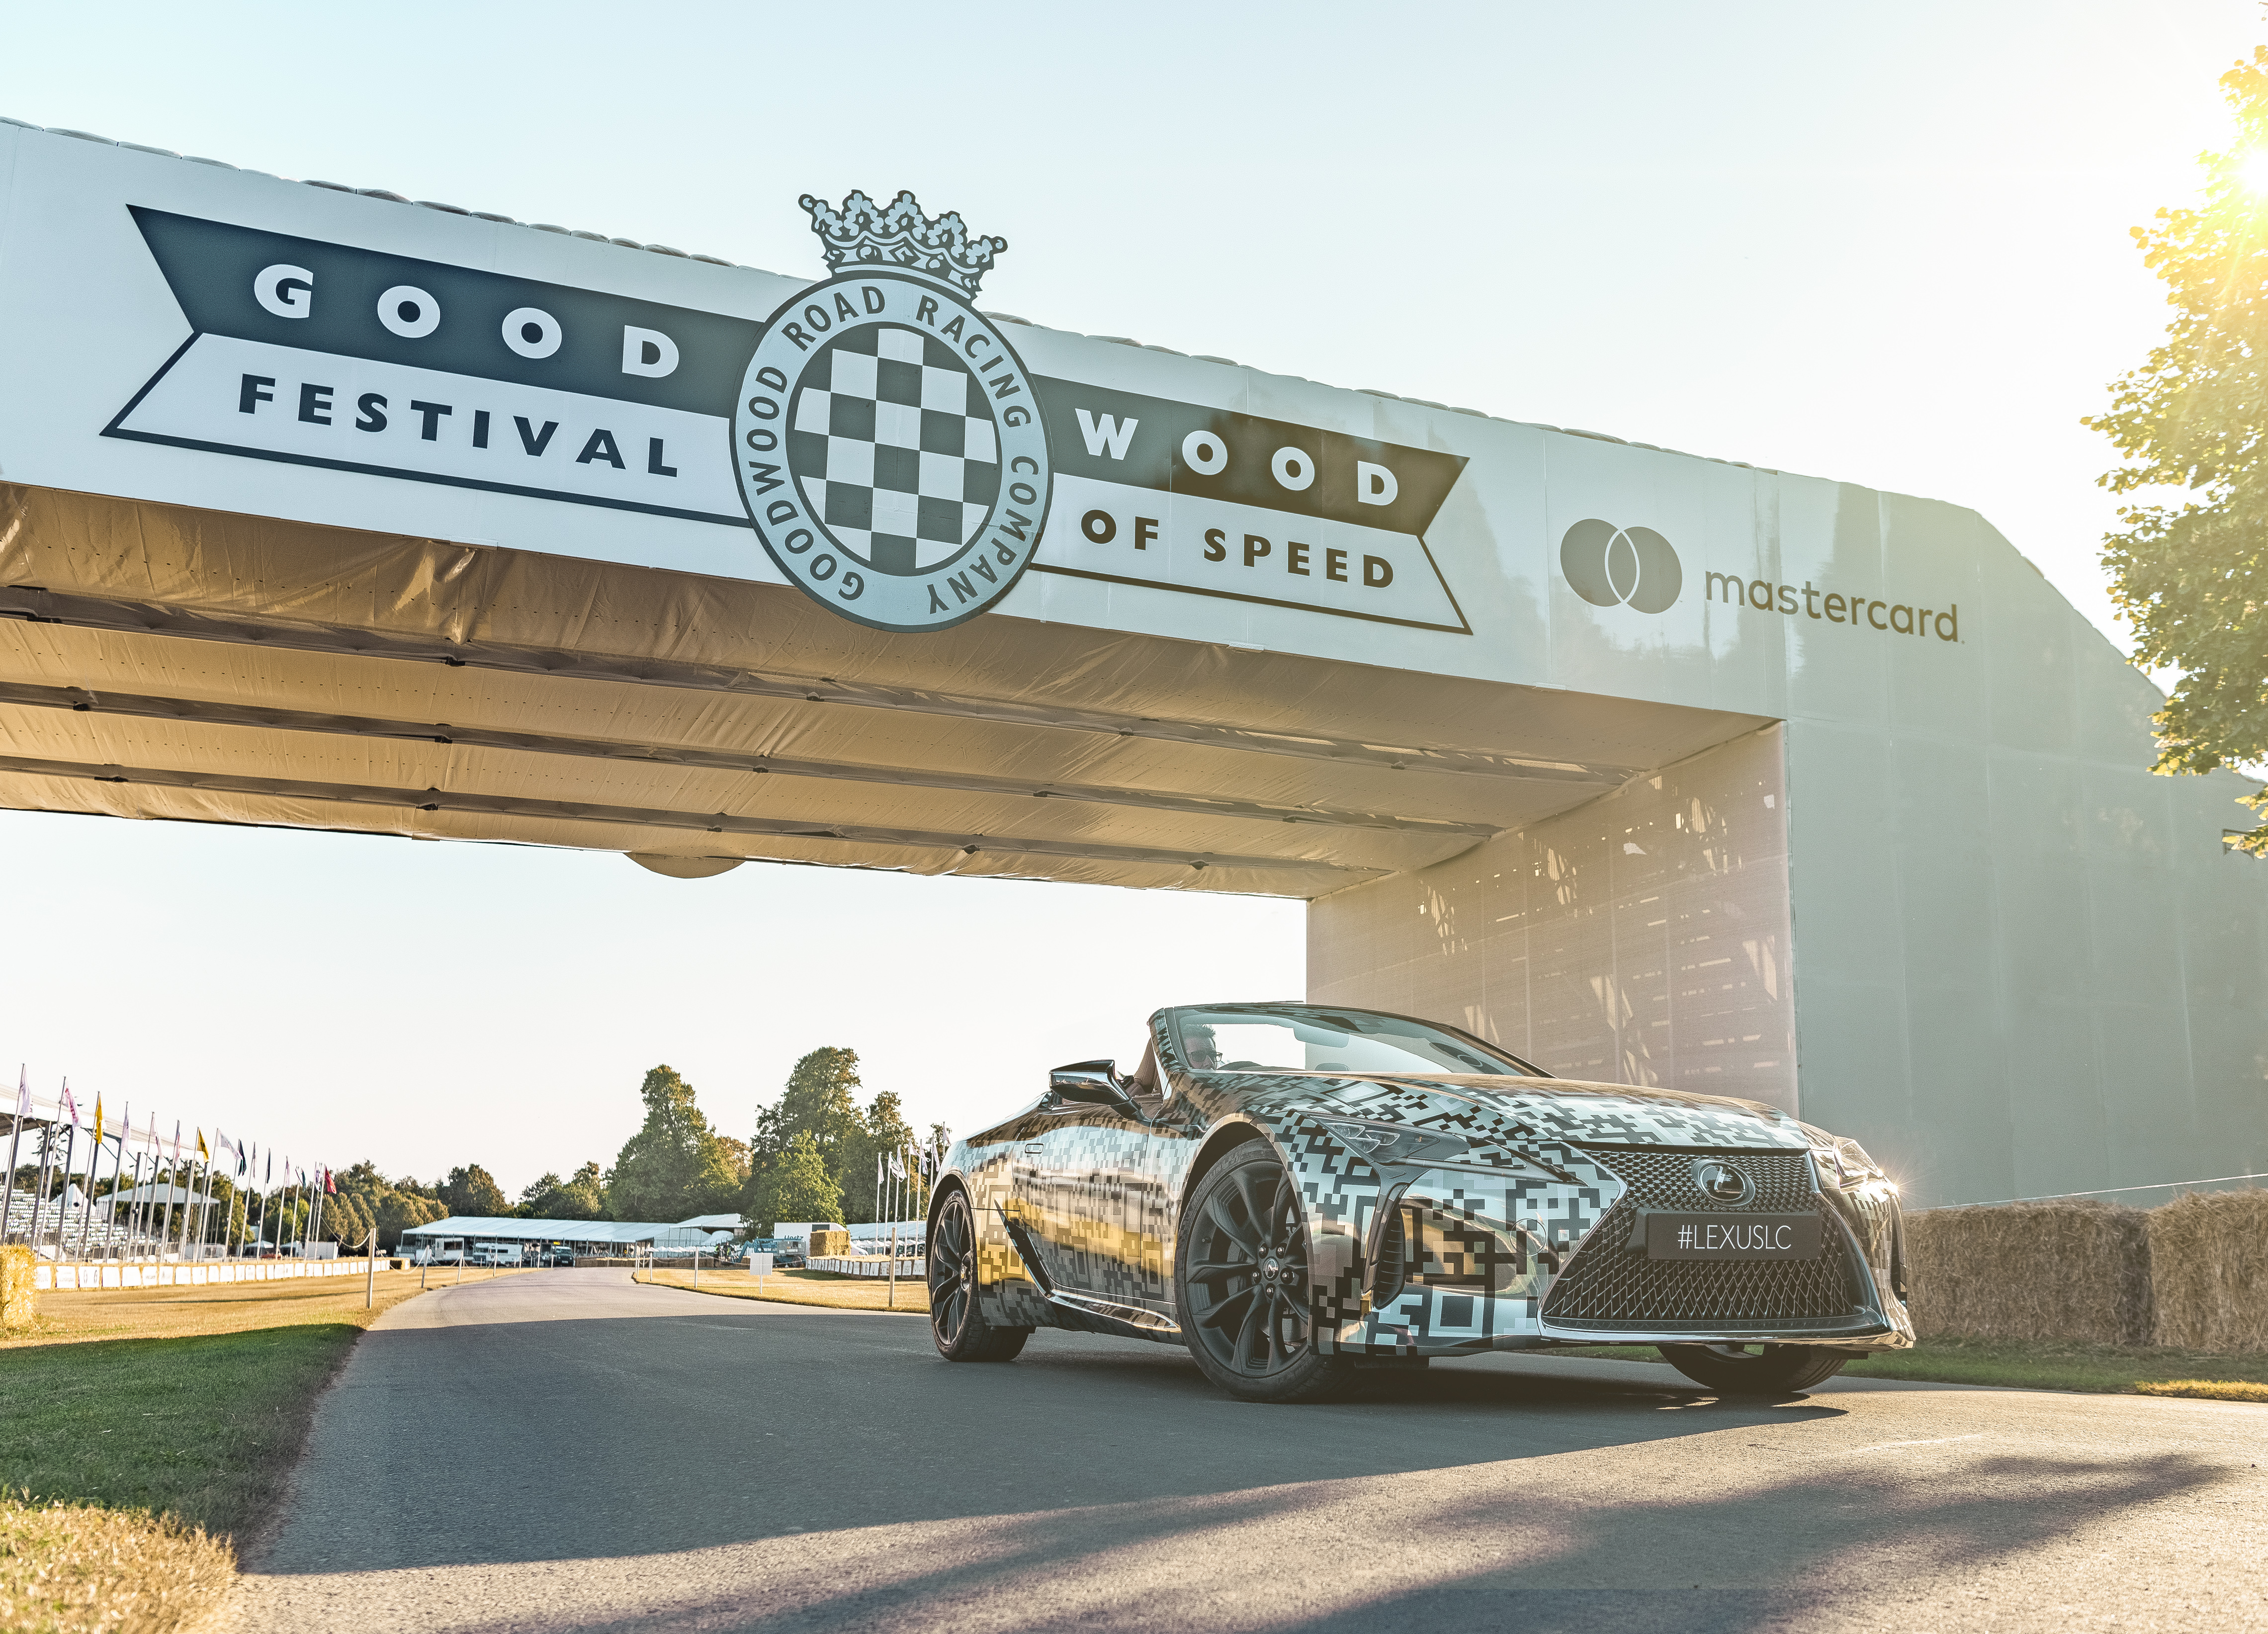 lexus lc convertible prototype 3 paul tan s automotive news https paultan org 2019 07 08 lexus lc convertible confirmed for production camouflaged prototype makes goodwood fos debut lexus lc convertible prototype 3